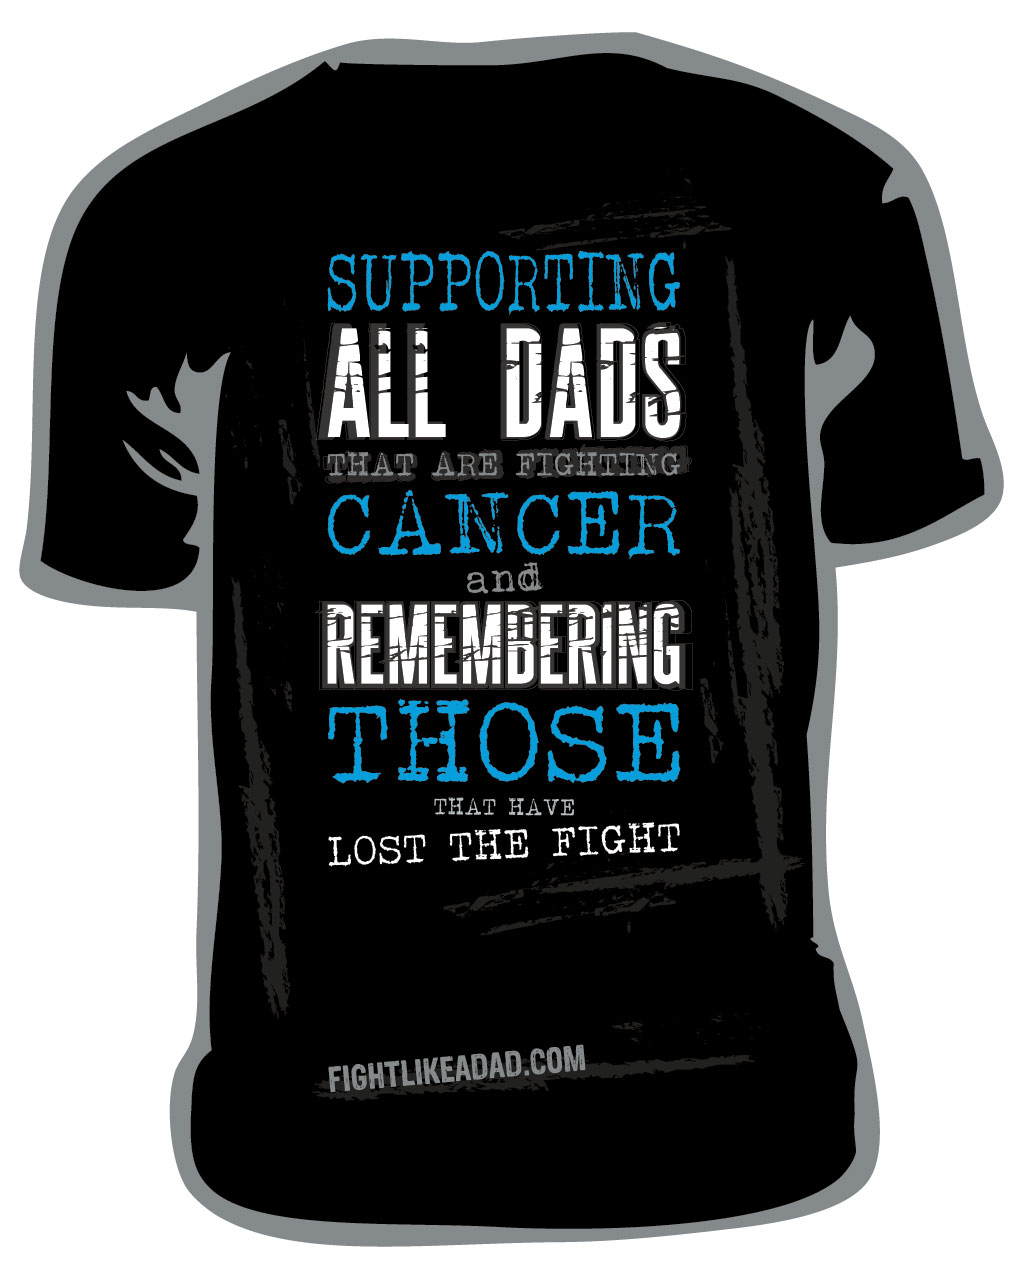 Fight like a Dad tshirt